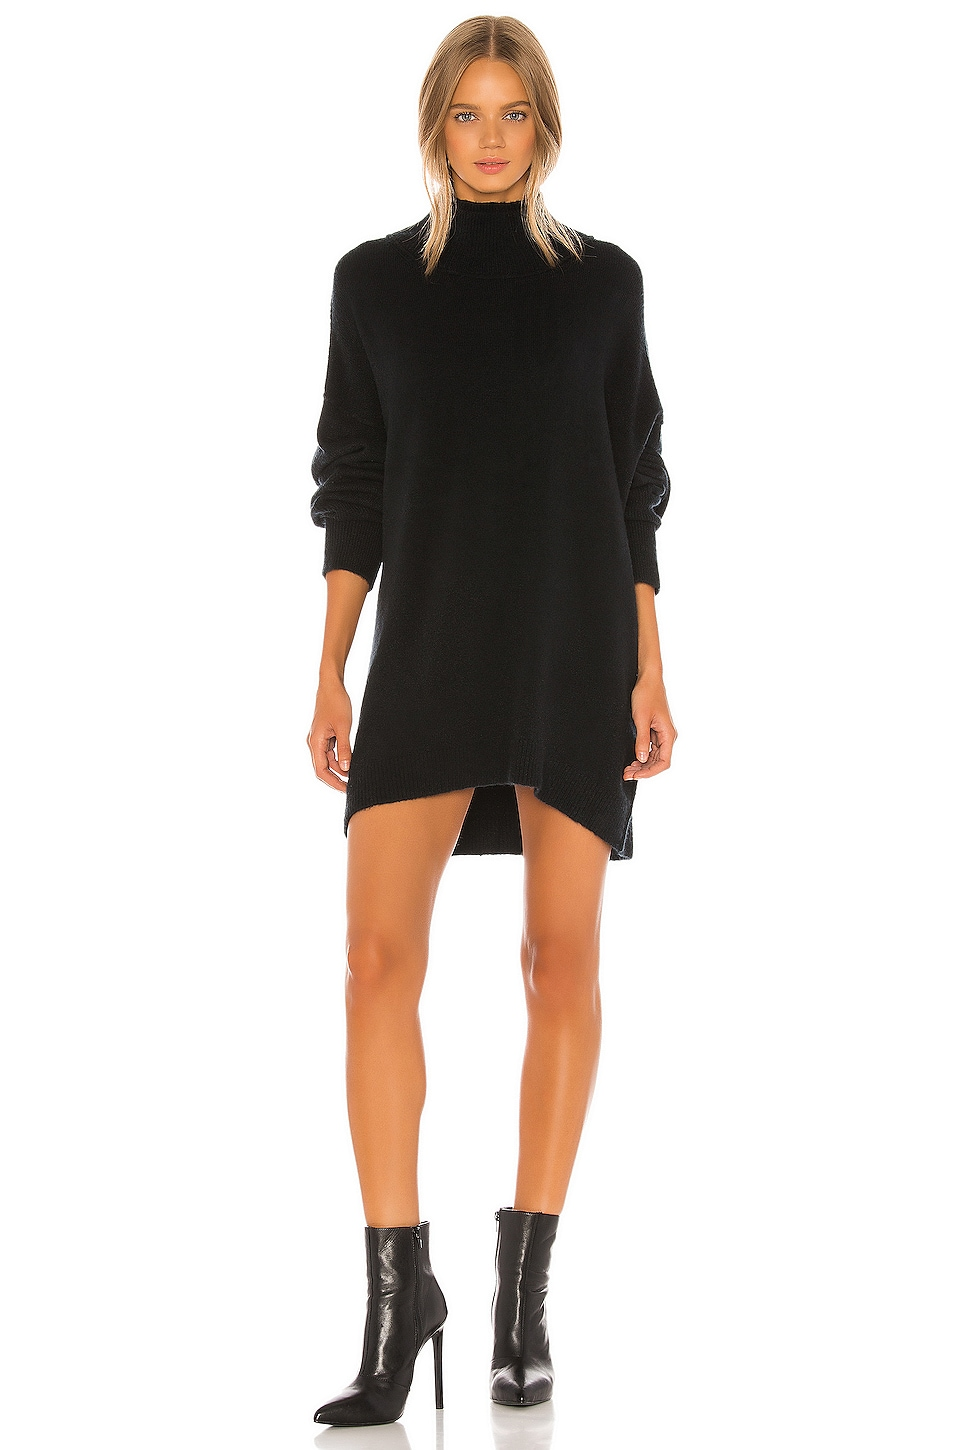 Free People Afterglow Mock Neck Sweater Dress in Black